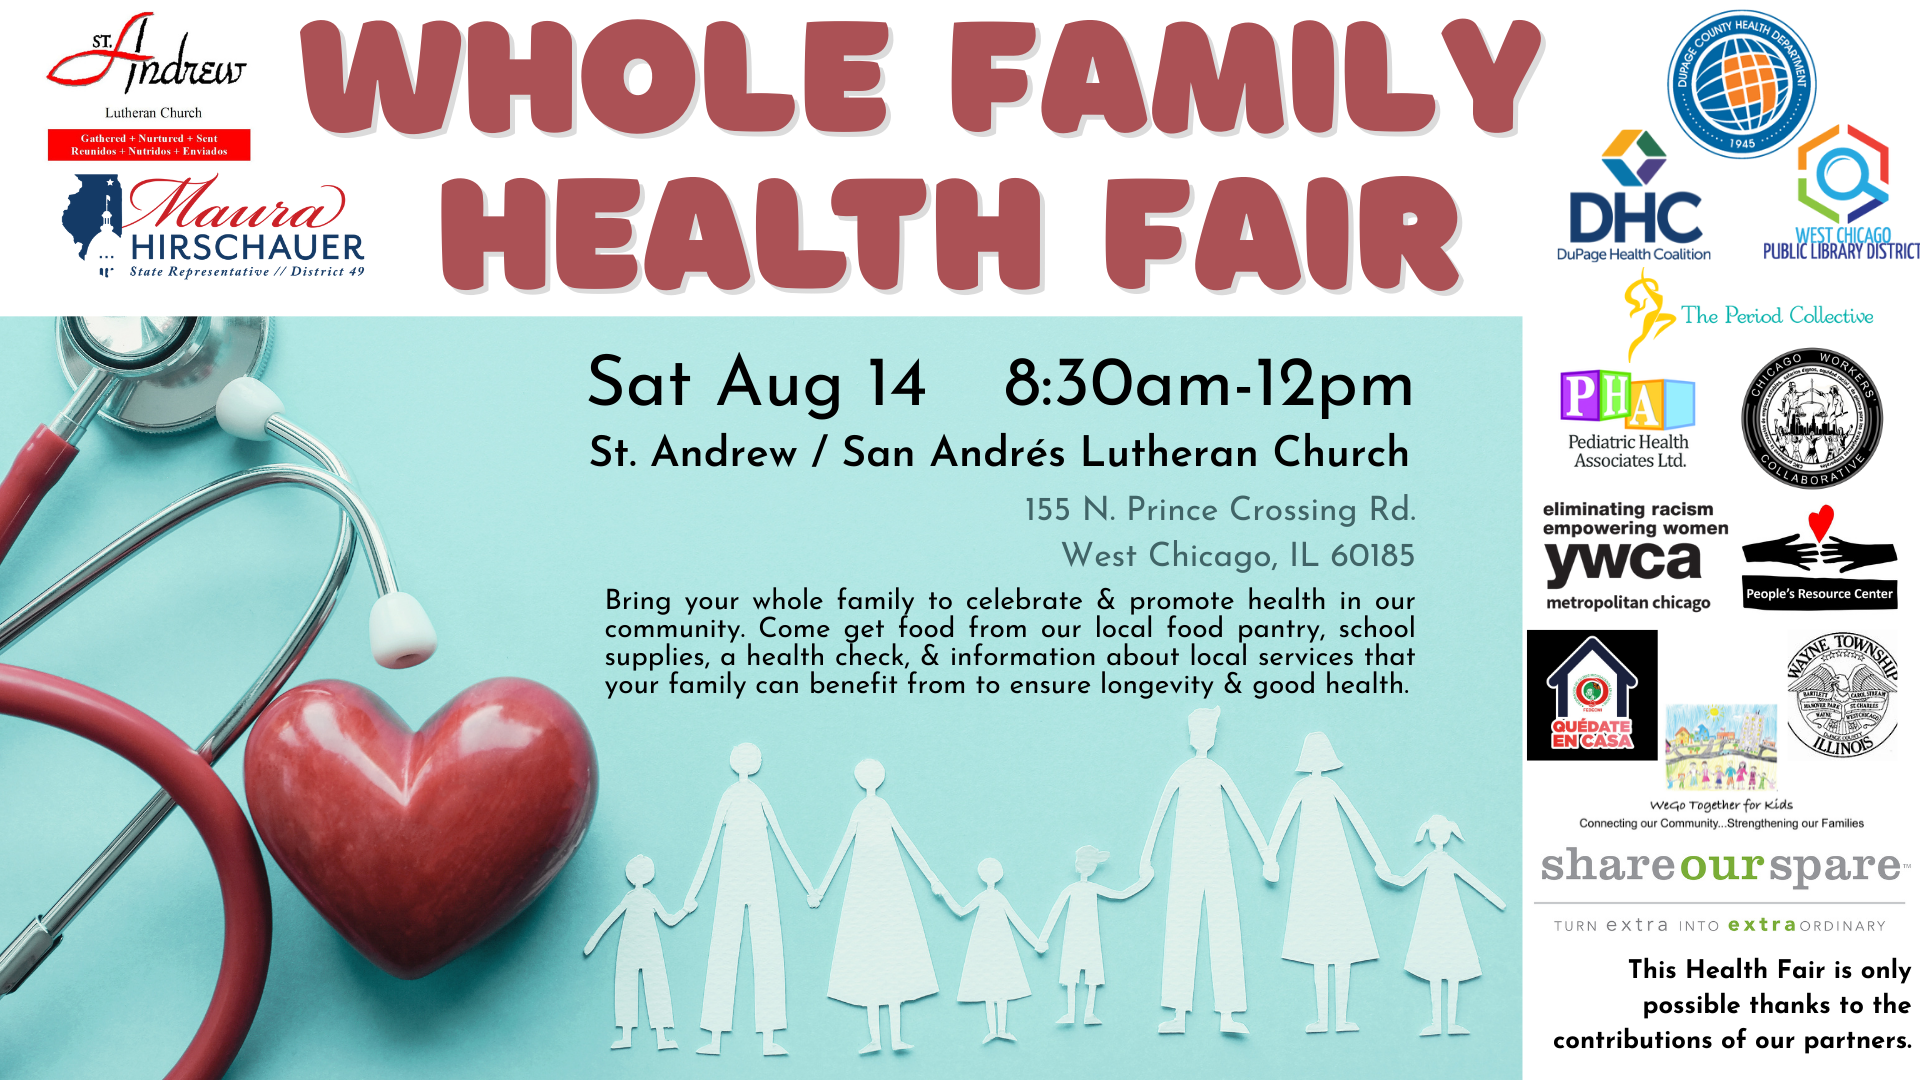 Whole Family Health Fair, Aug 14, 8:30am-12pm, St.Andrew's/St.Andres Lutheran Church, 155 N Prince Crossing Rd, West Chicago IL 60185, Logos of many sponsoring organizations